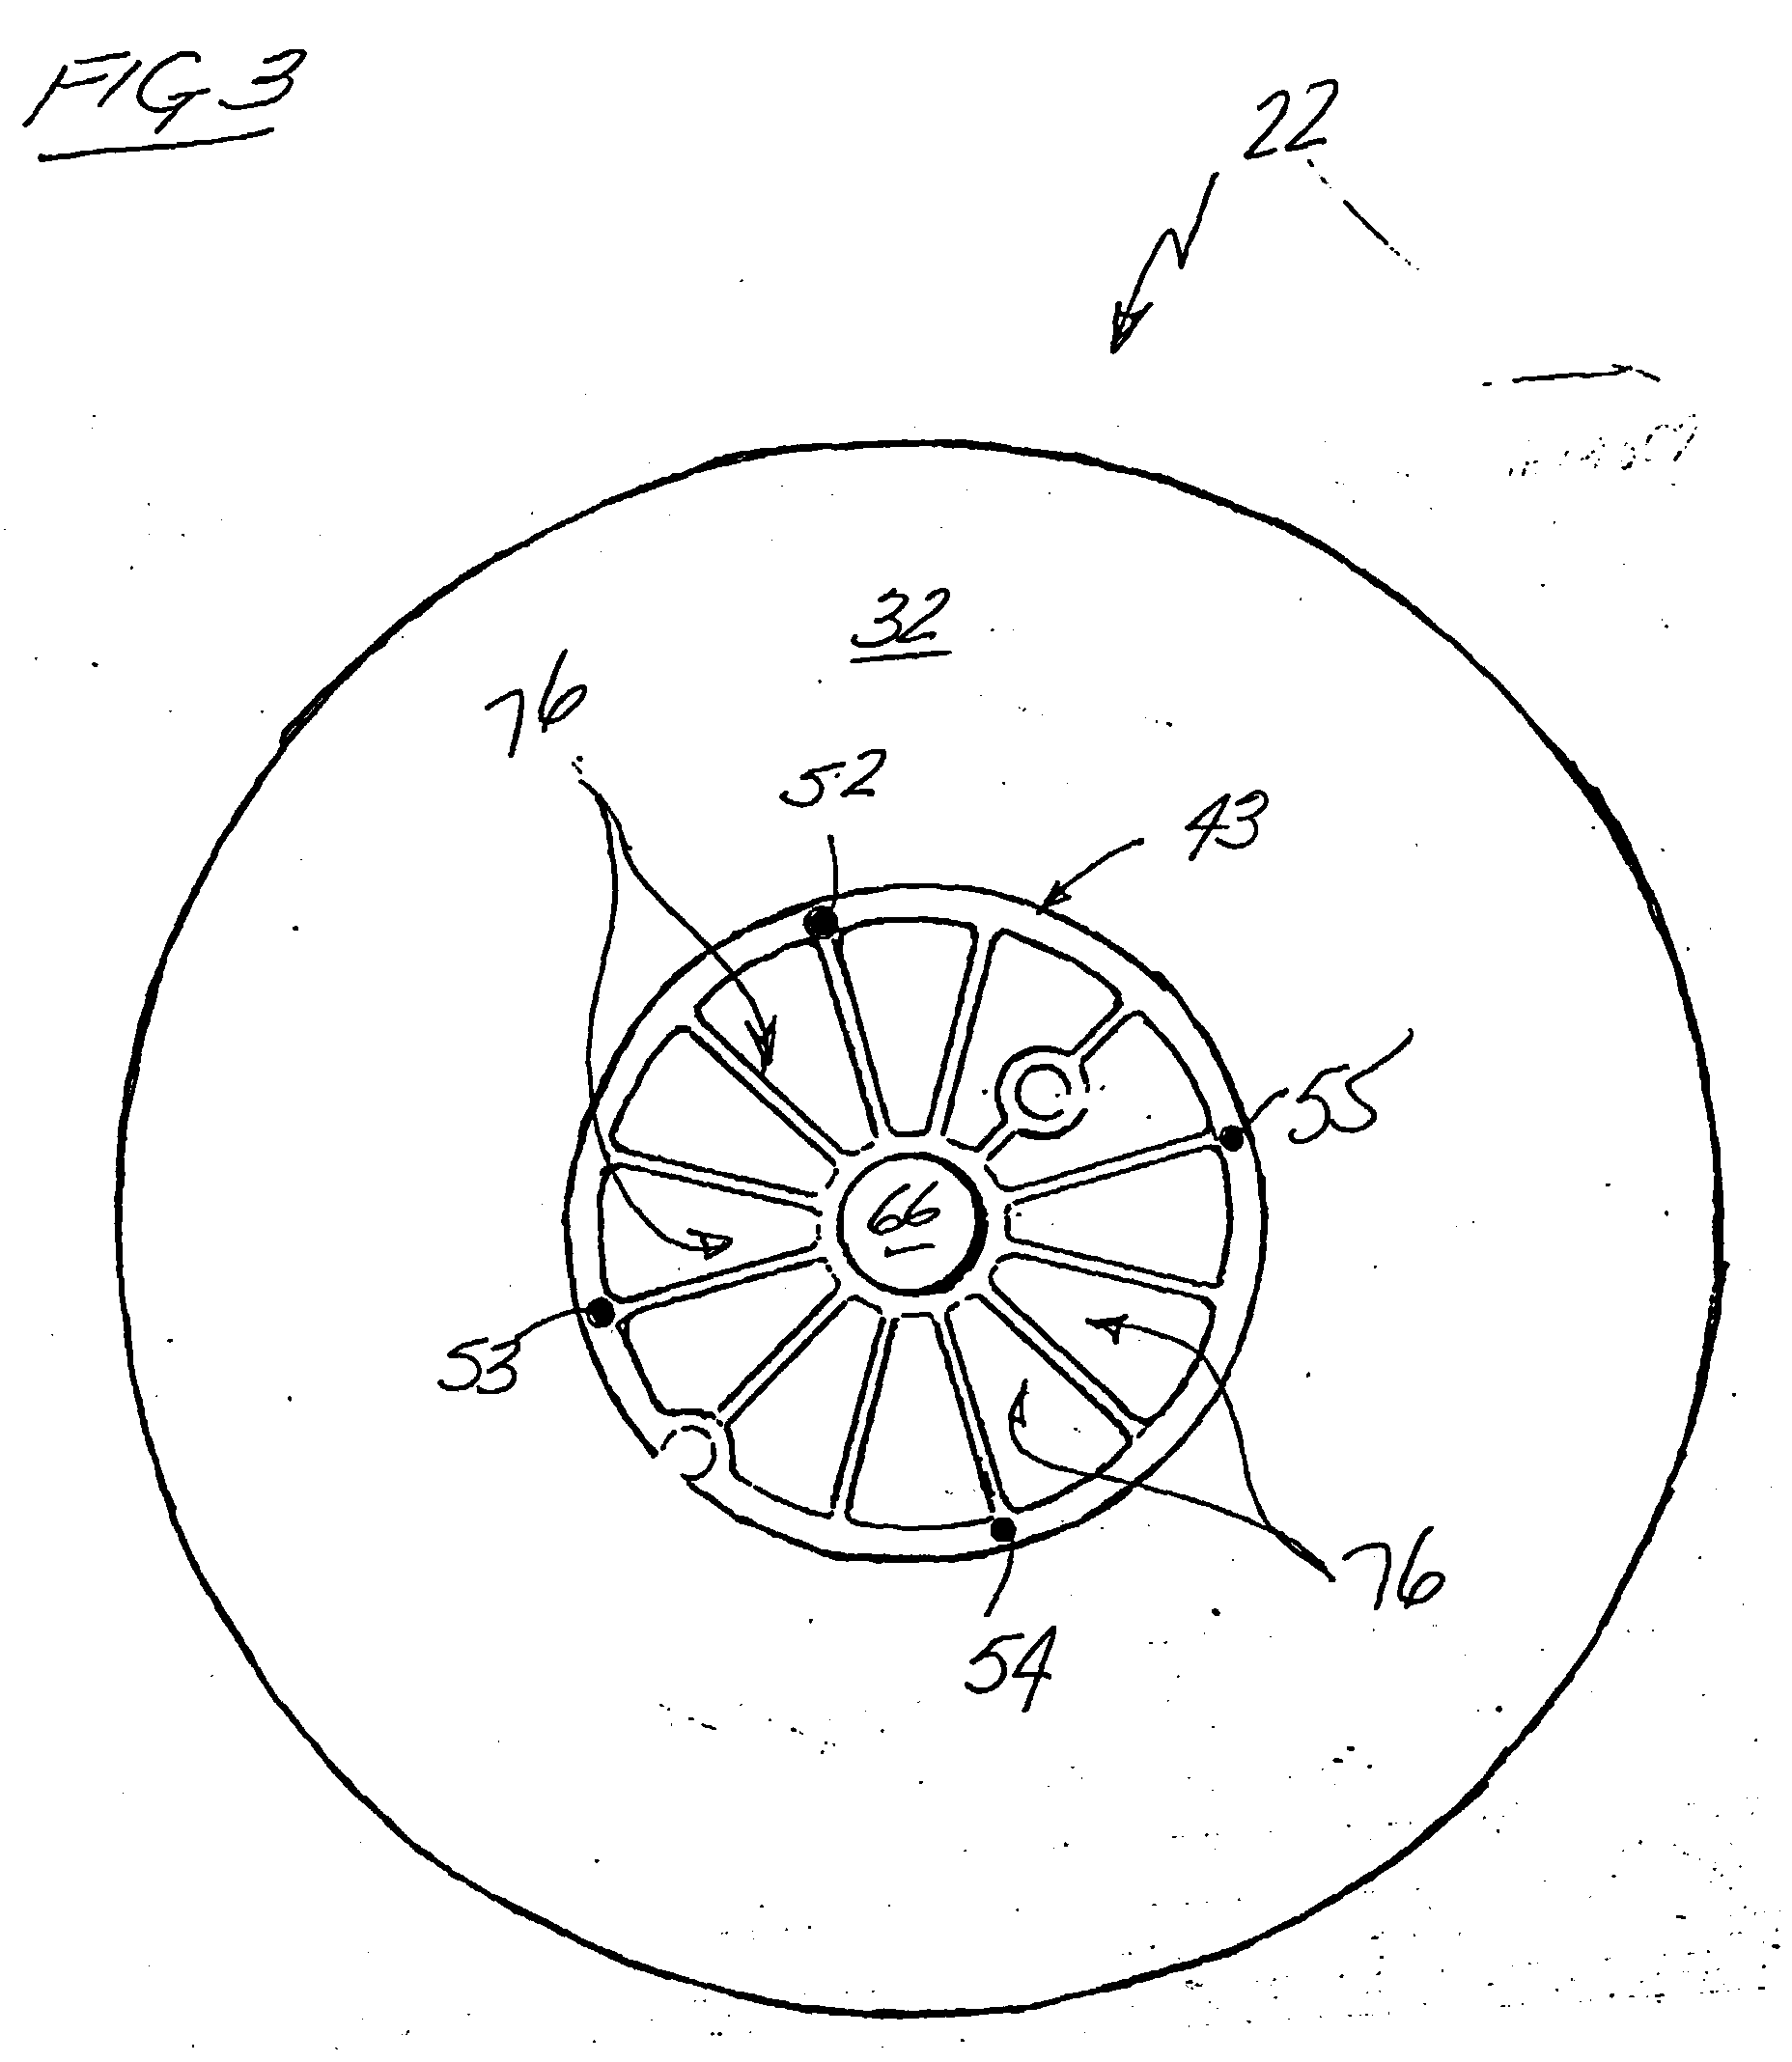 Patent ep1035061a2 reel assembly patents